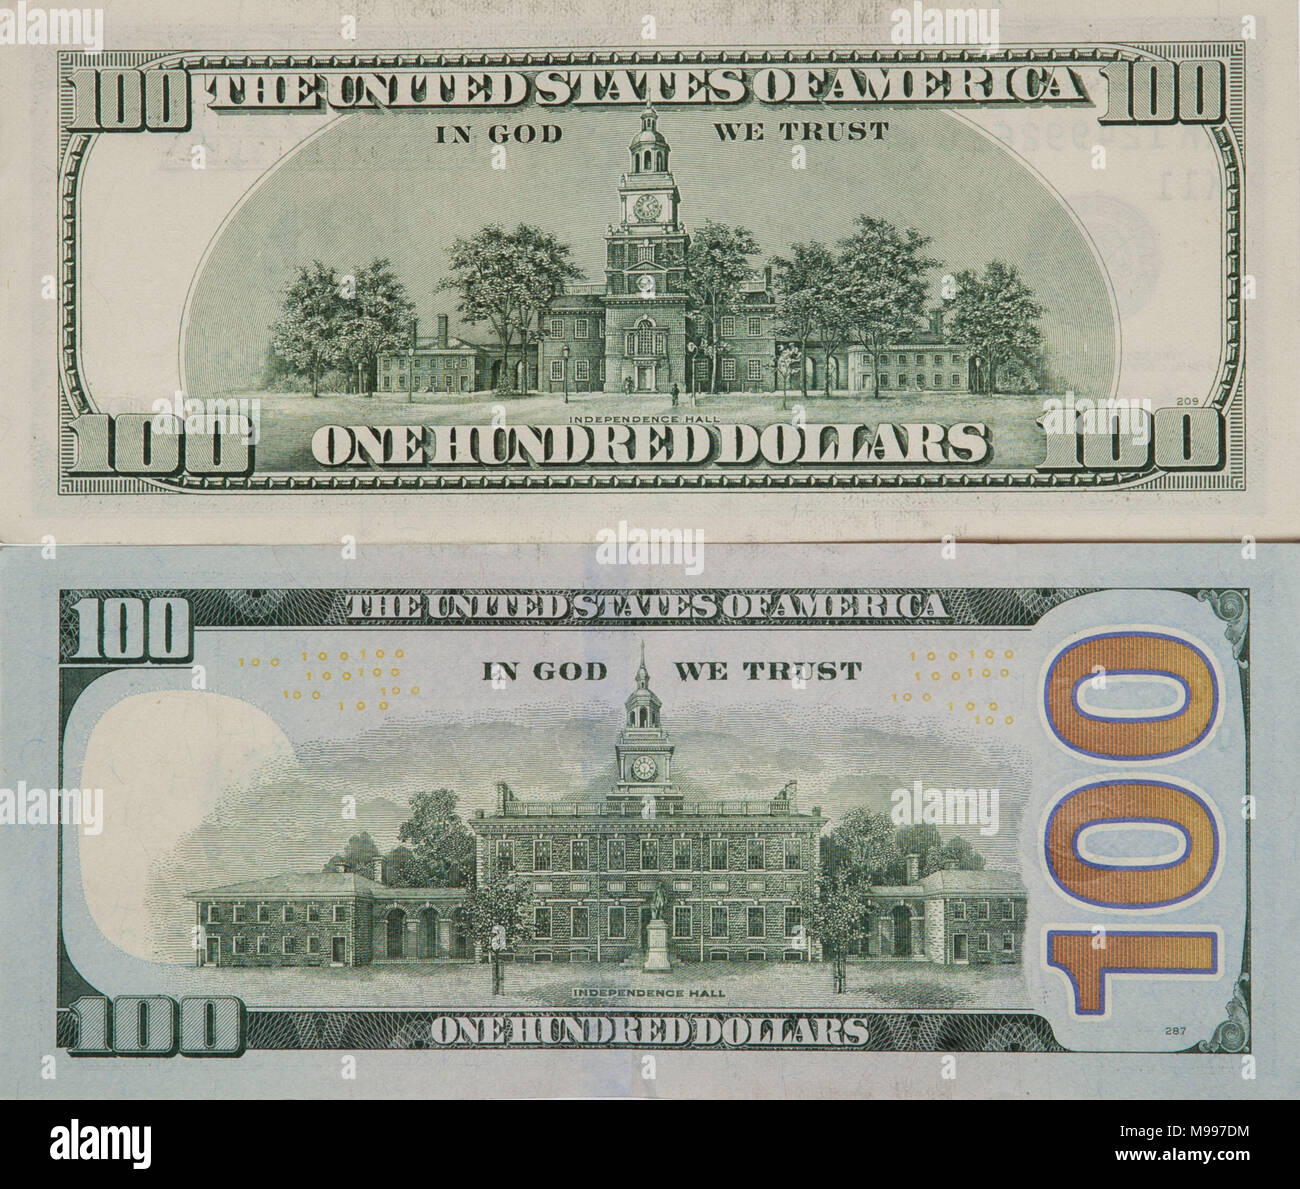 Old and new 100-dollar bills and banknotes, the back side. - Stock Image